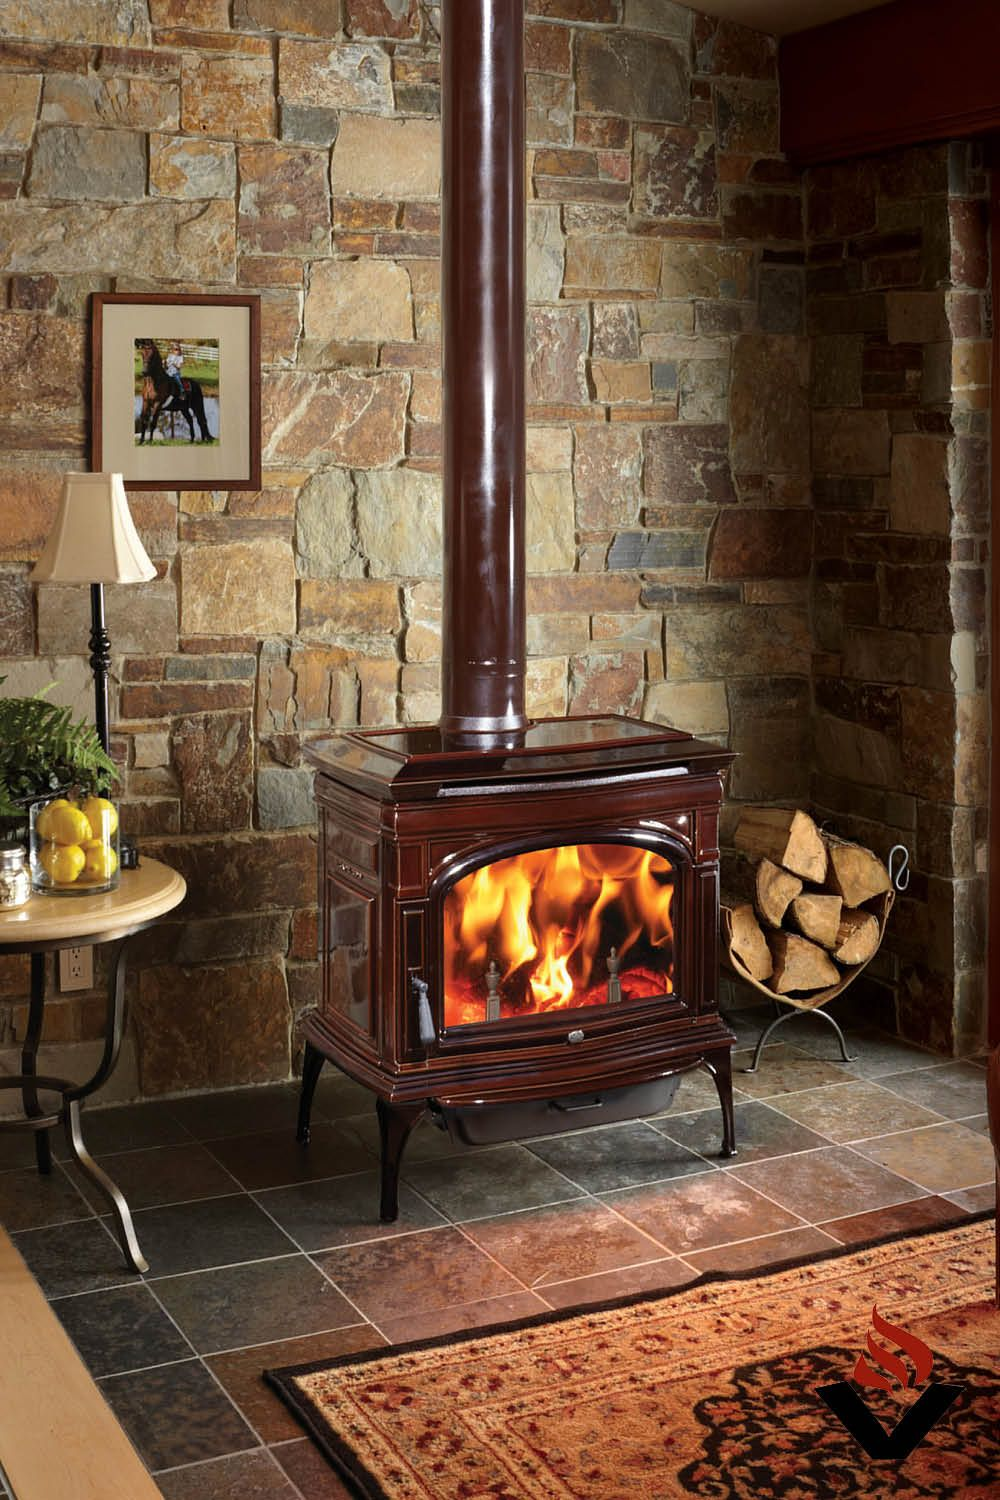 47 Discontinued Units Ideas In 2021 Fireplace Gas Fireplace The Unit